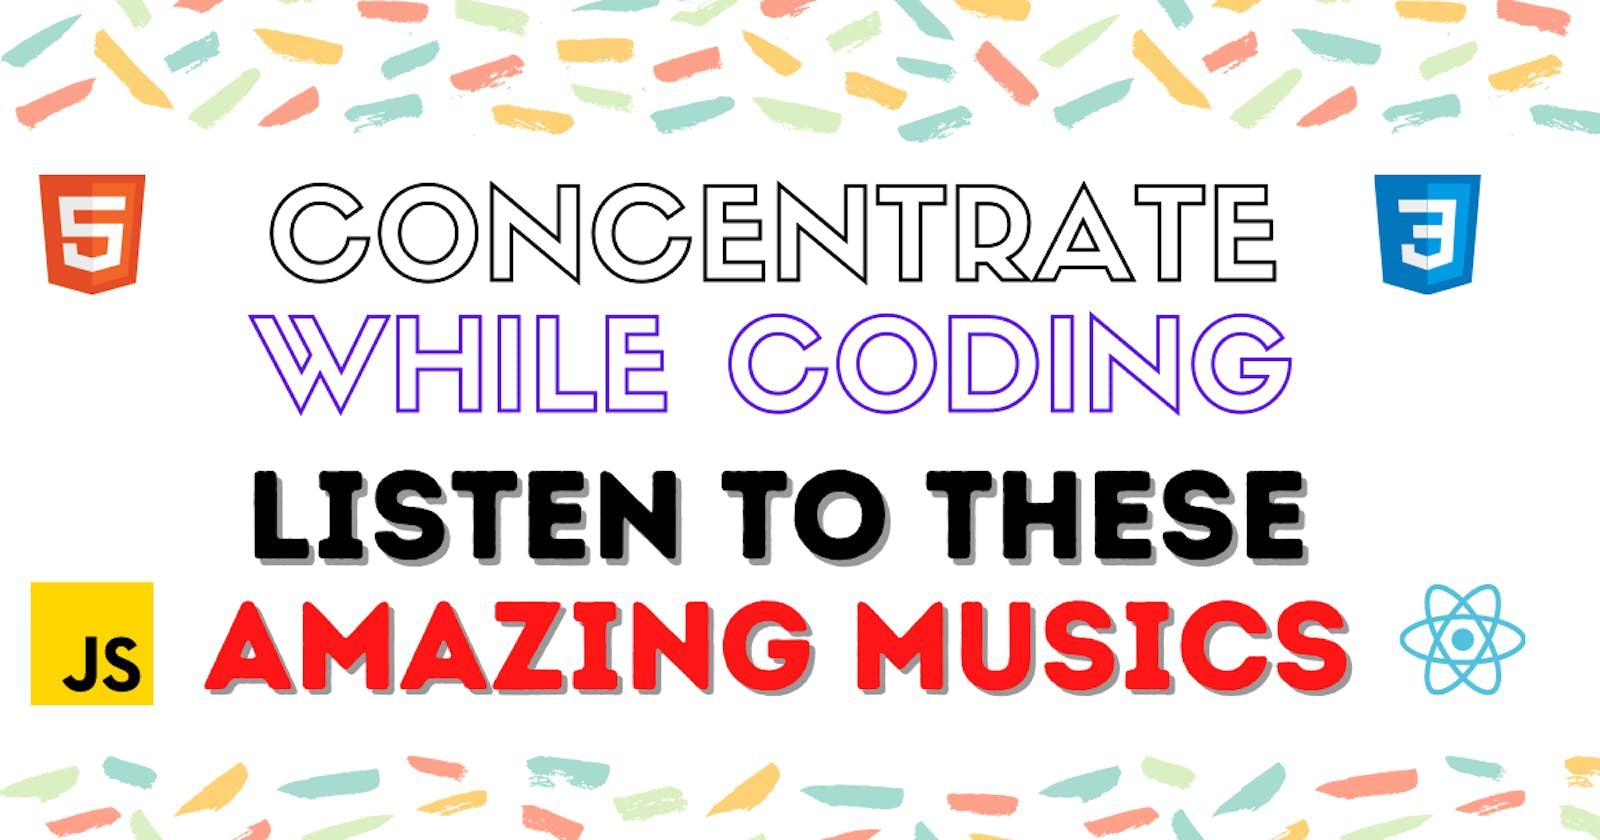 11 Musics for concentration and Productivity while Coding